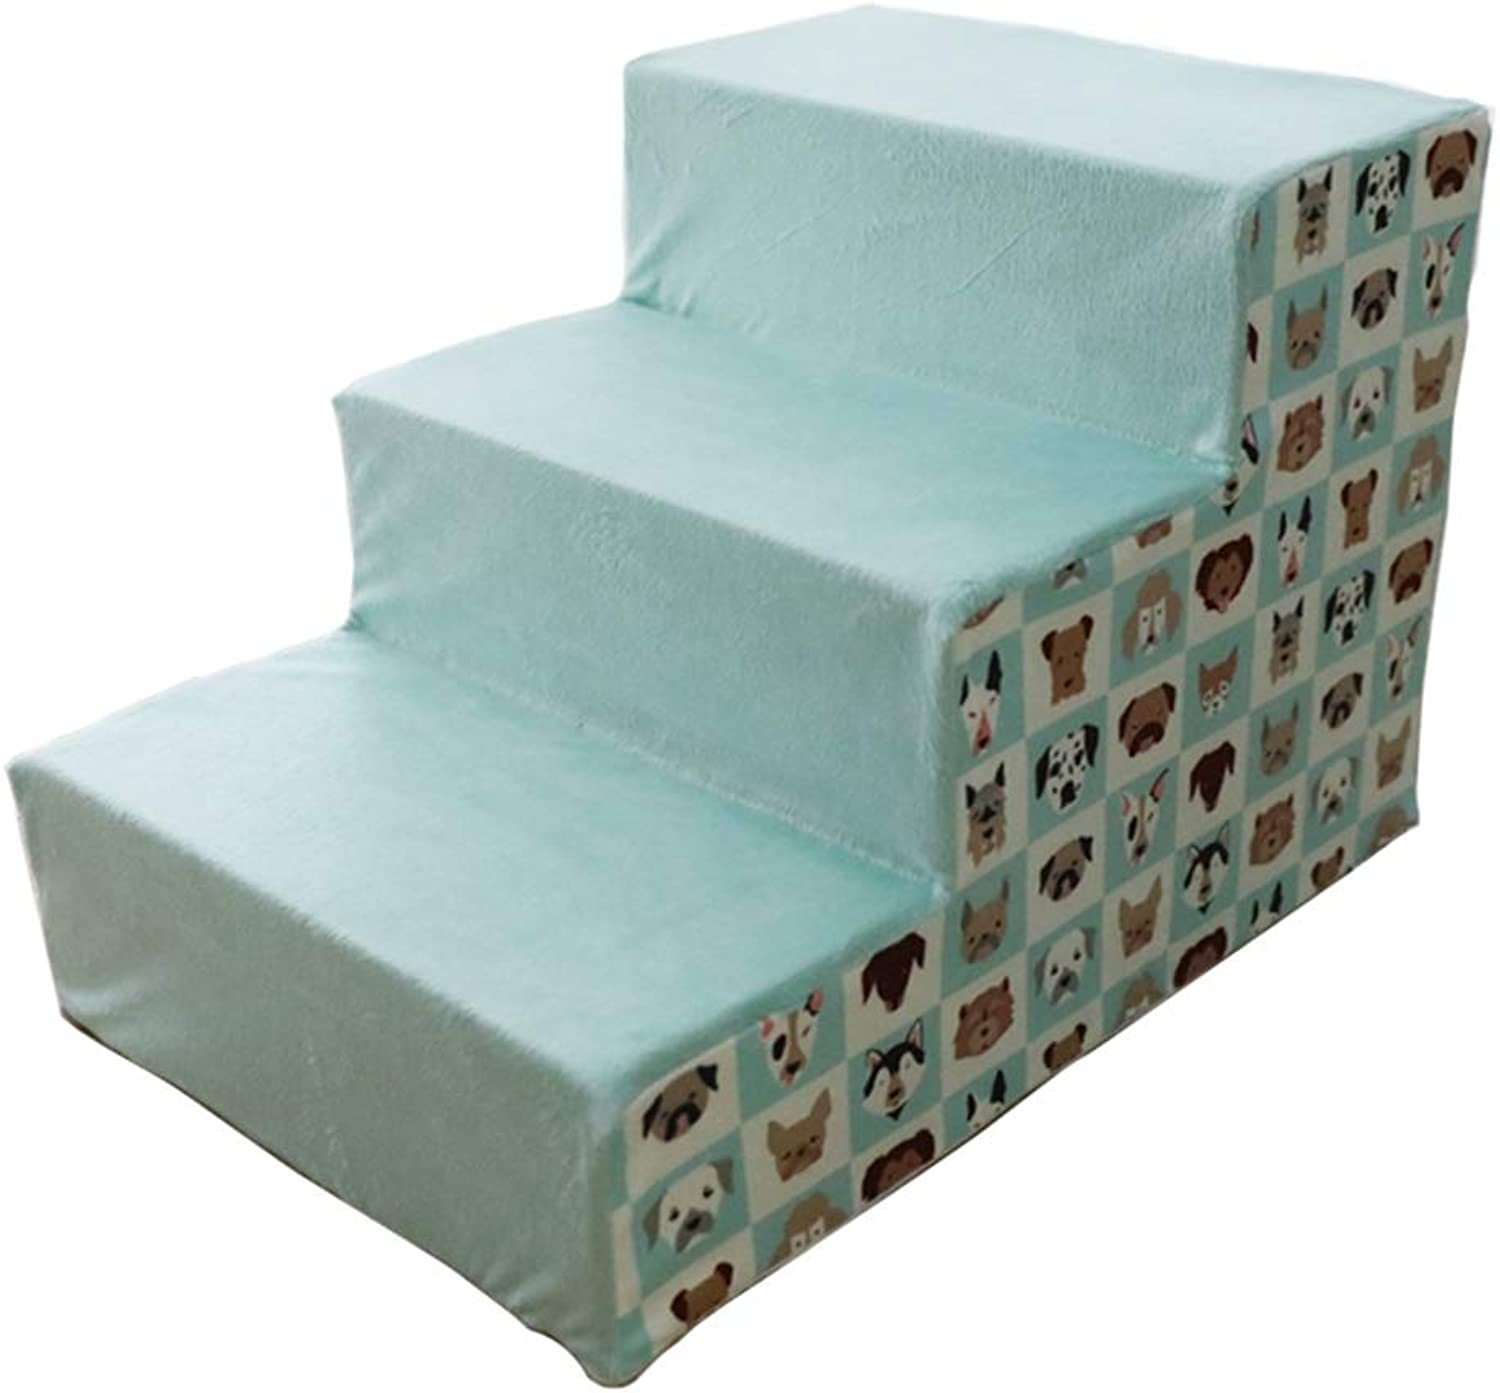 3Steps Pet Bed Ladder for Dogs and Cats, Short Plush Fabric High Density Sponge, 60×40×40cm(23.62×15.74×15.74in)